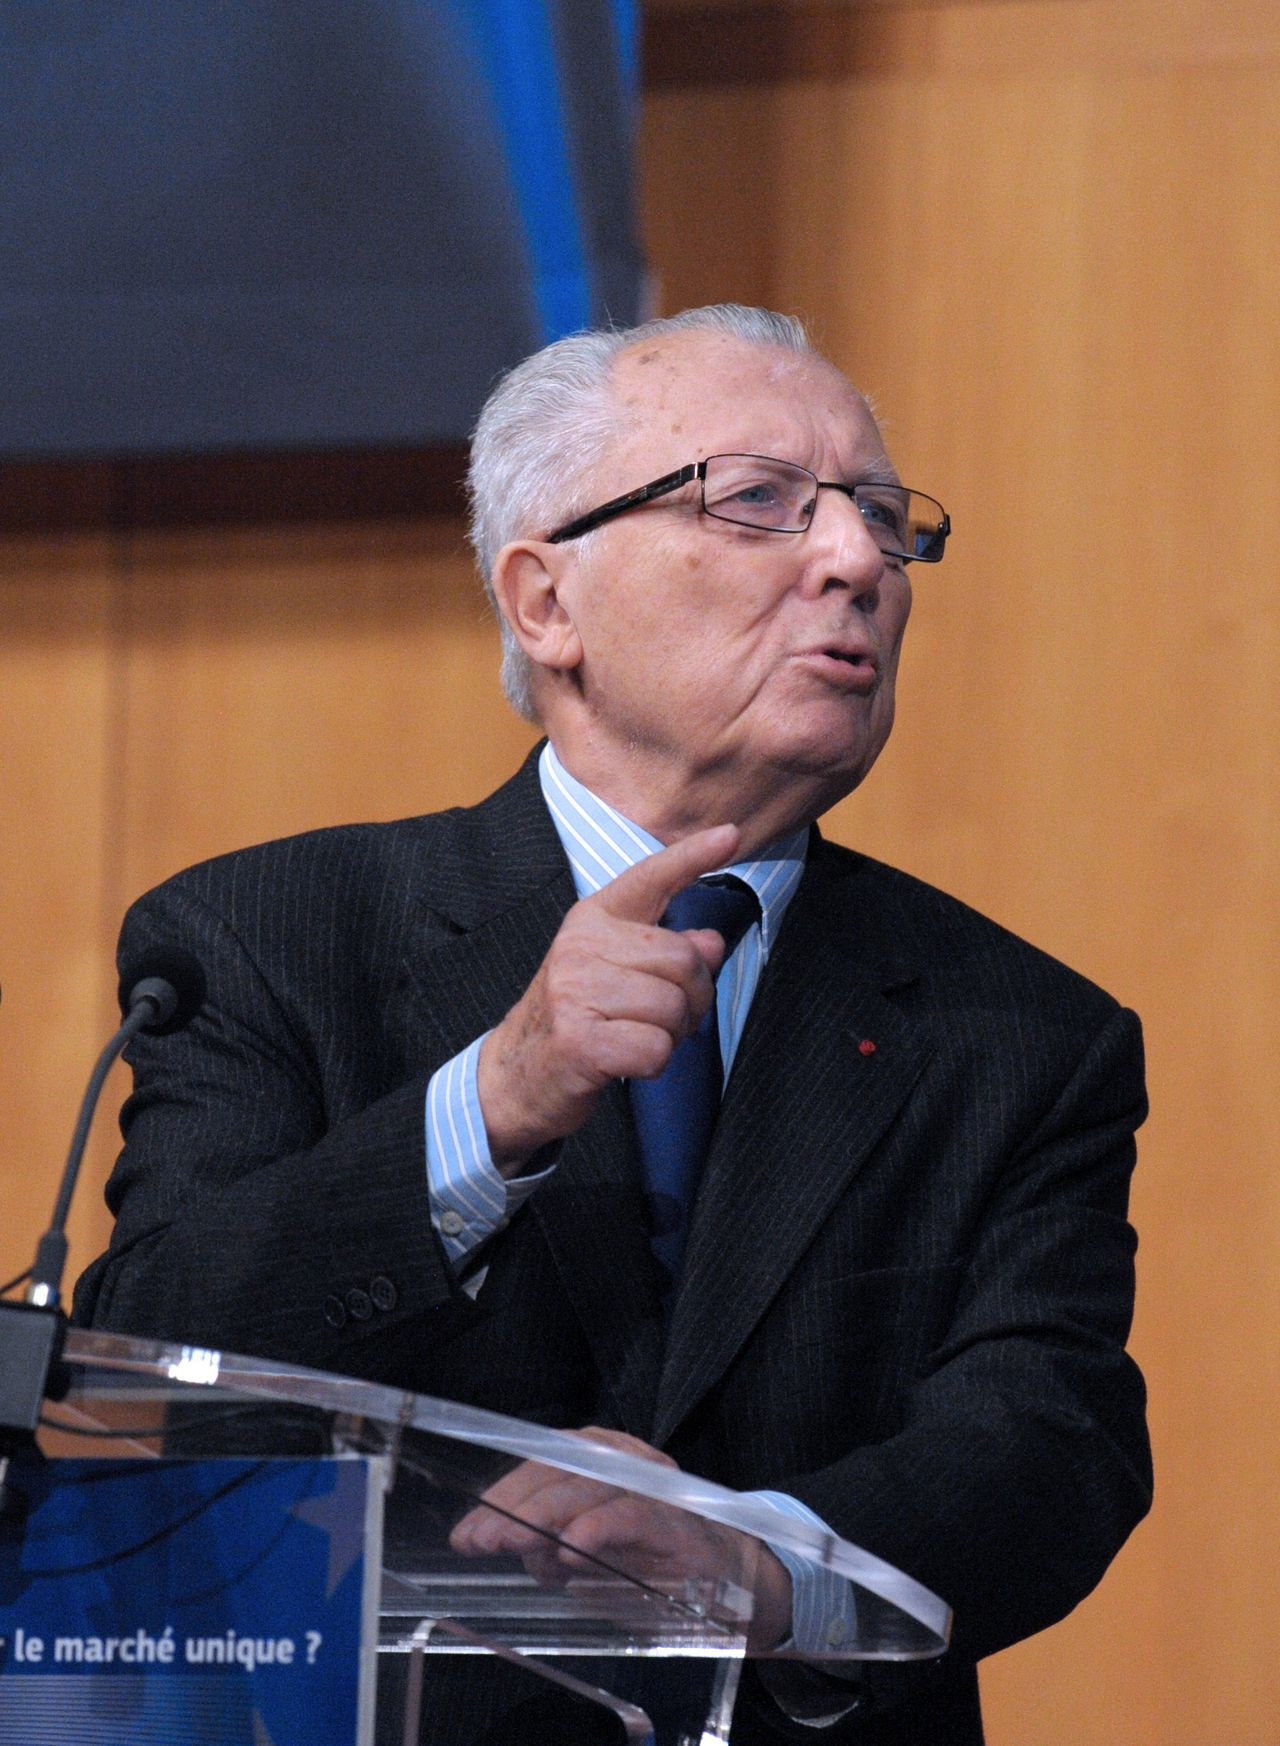 Former European Commission Chief, French Jacques Delors, delivers a speech during a conference on the competitiveness of the French economy, at the Economy ministry in Paris, on November 6, 2012. The conference comes as French governement holds a seminar after Louis Gallois, former head of the French SNCF railways and of the EADS aerospace, issued a report calling for for a 30-billion-euro reduction in labour costs.AFP PHOTO ERIC PIERMONT